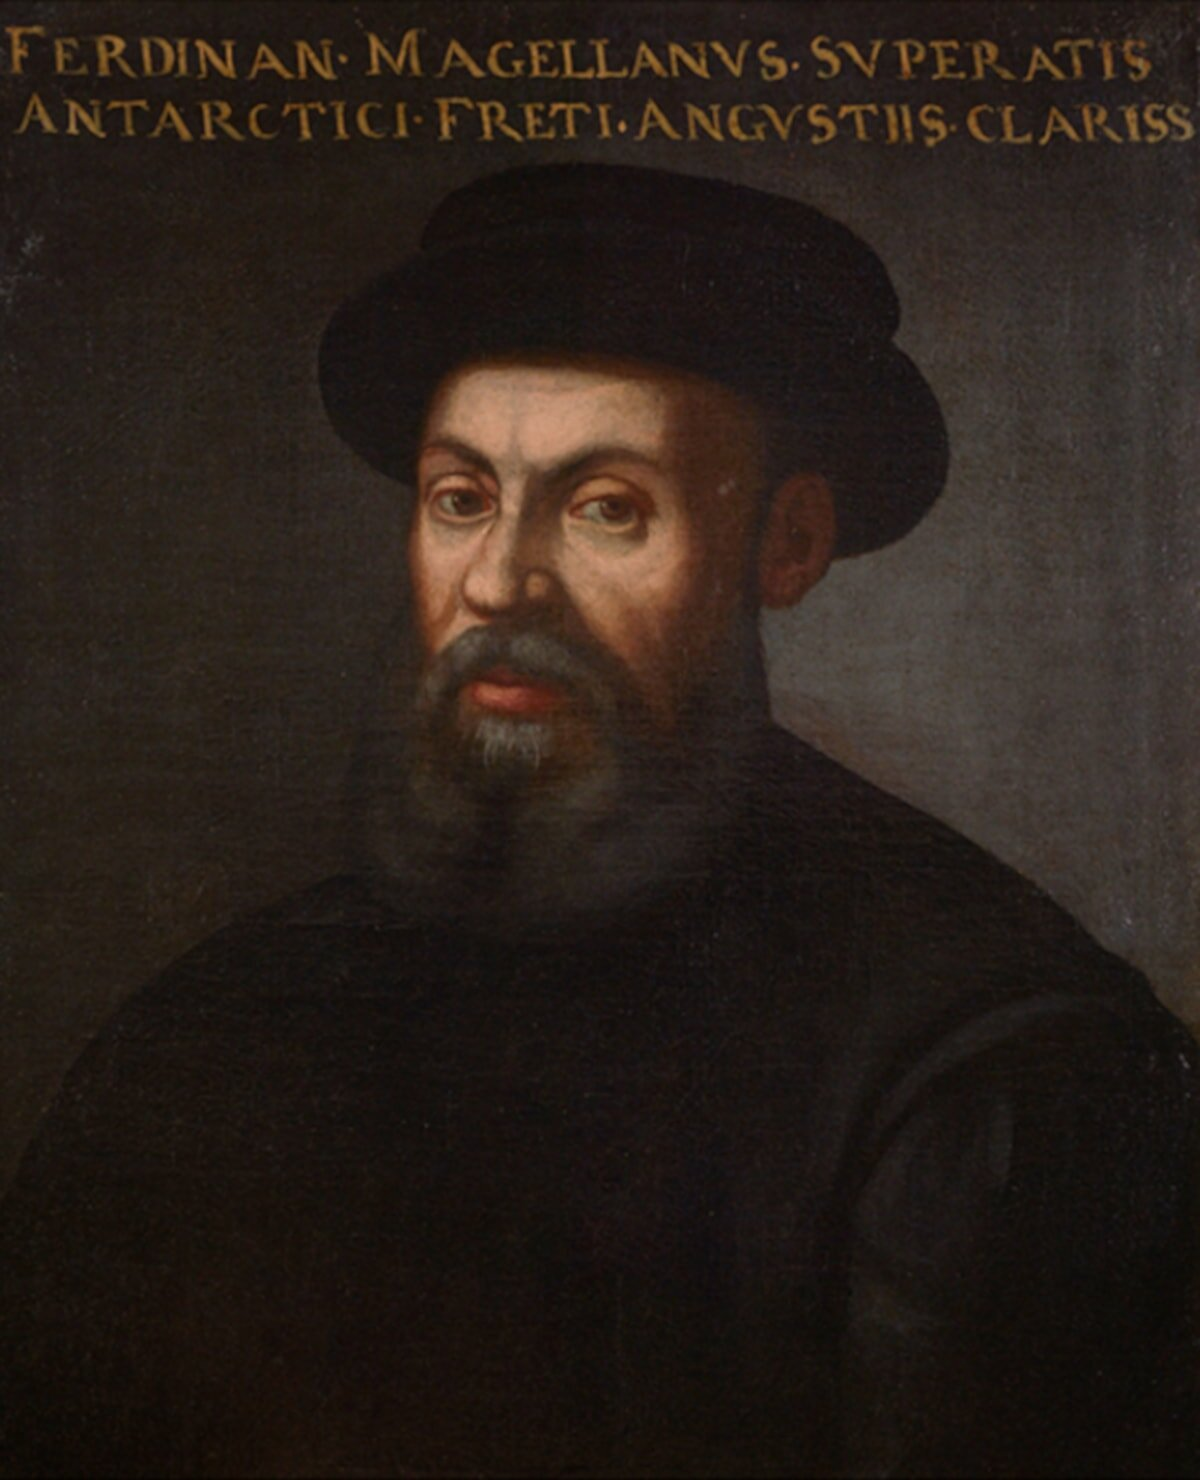 Ferdinand Magellan was another famous explorer from Portugal to make his name in the 15th century.